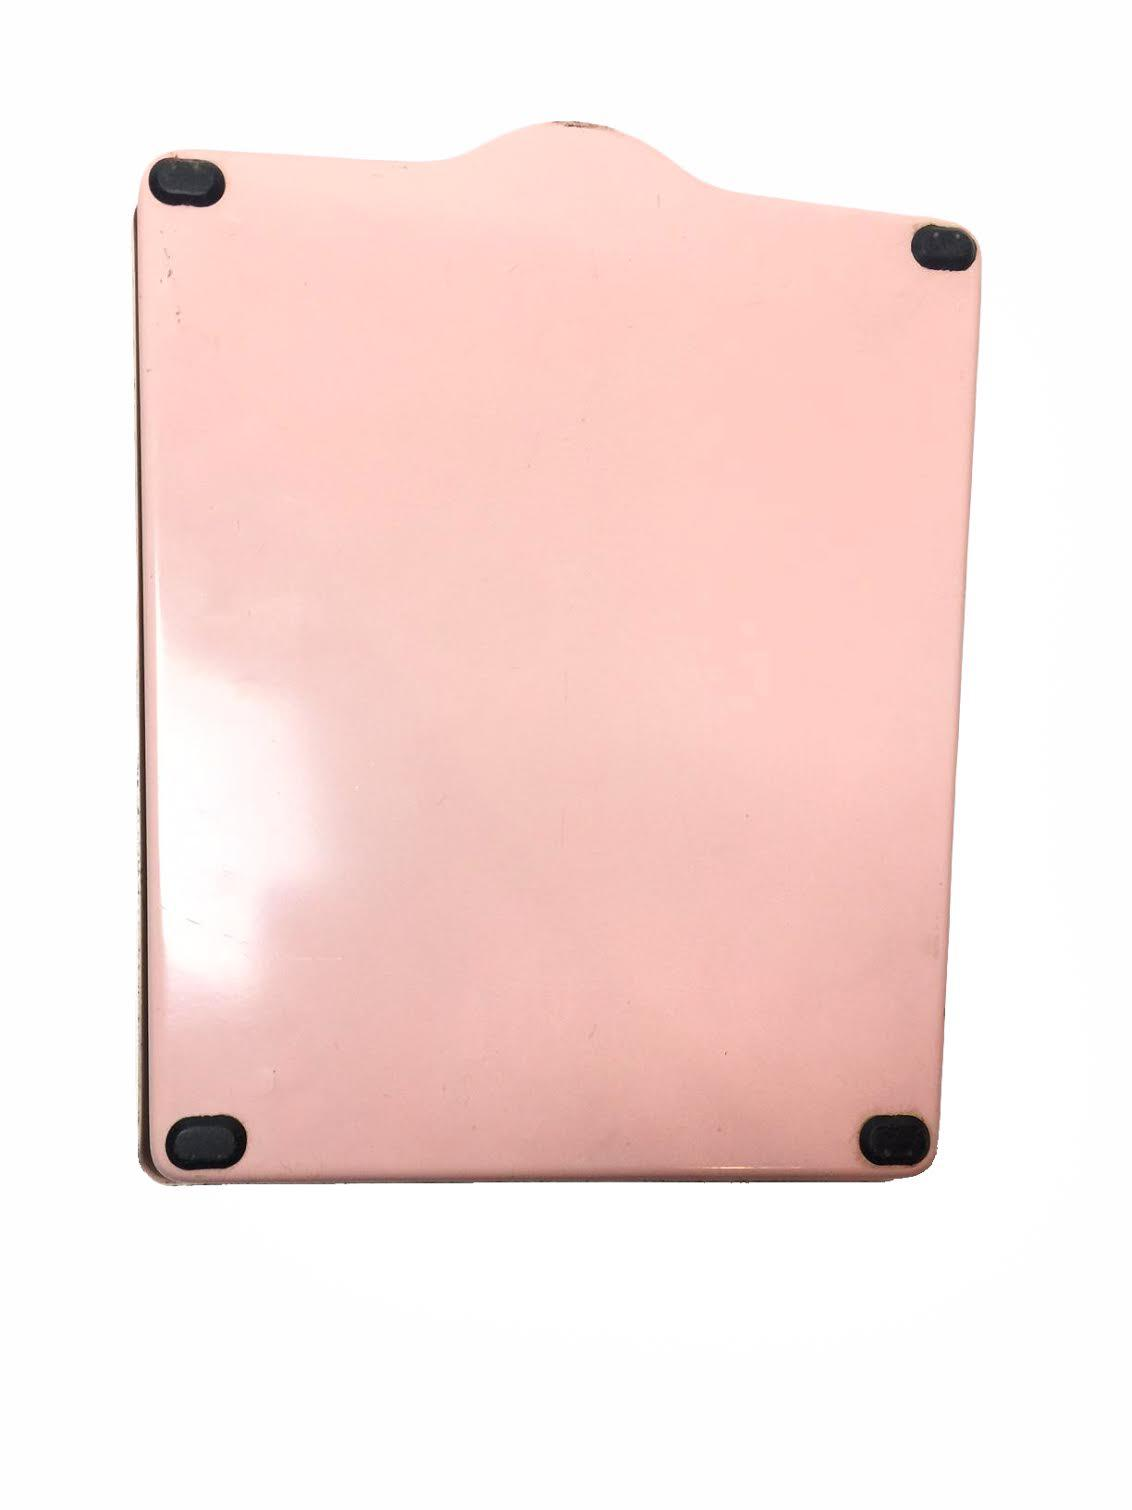 Vintage 1950s Classic Pink Detecto Bathroom Scale   Image 3 Of 3